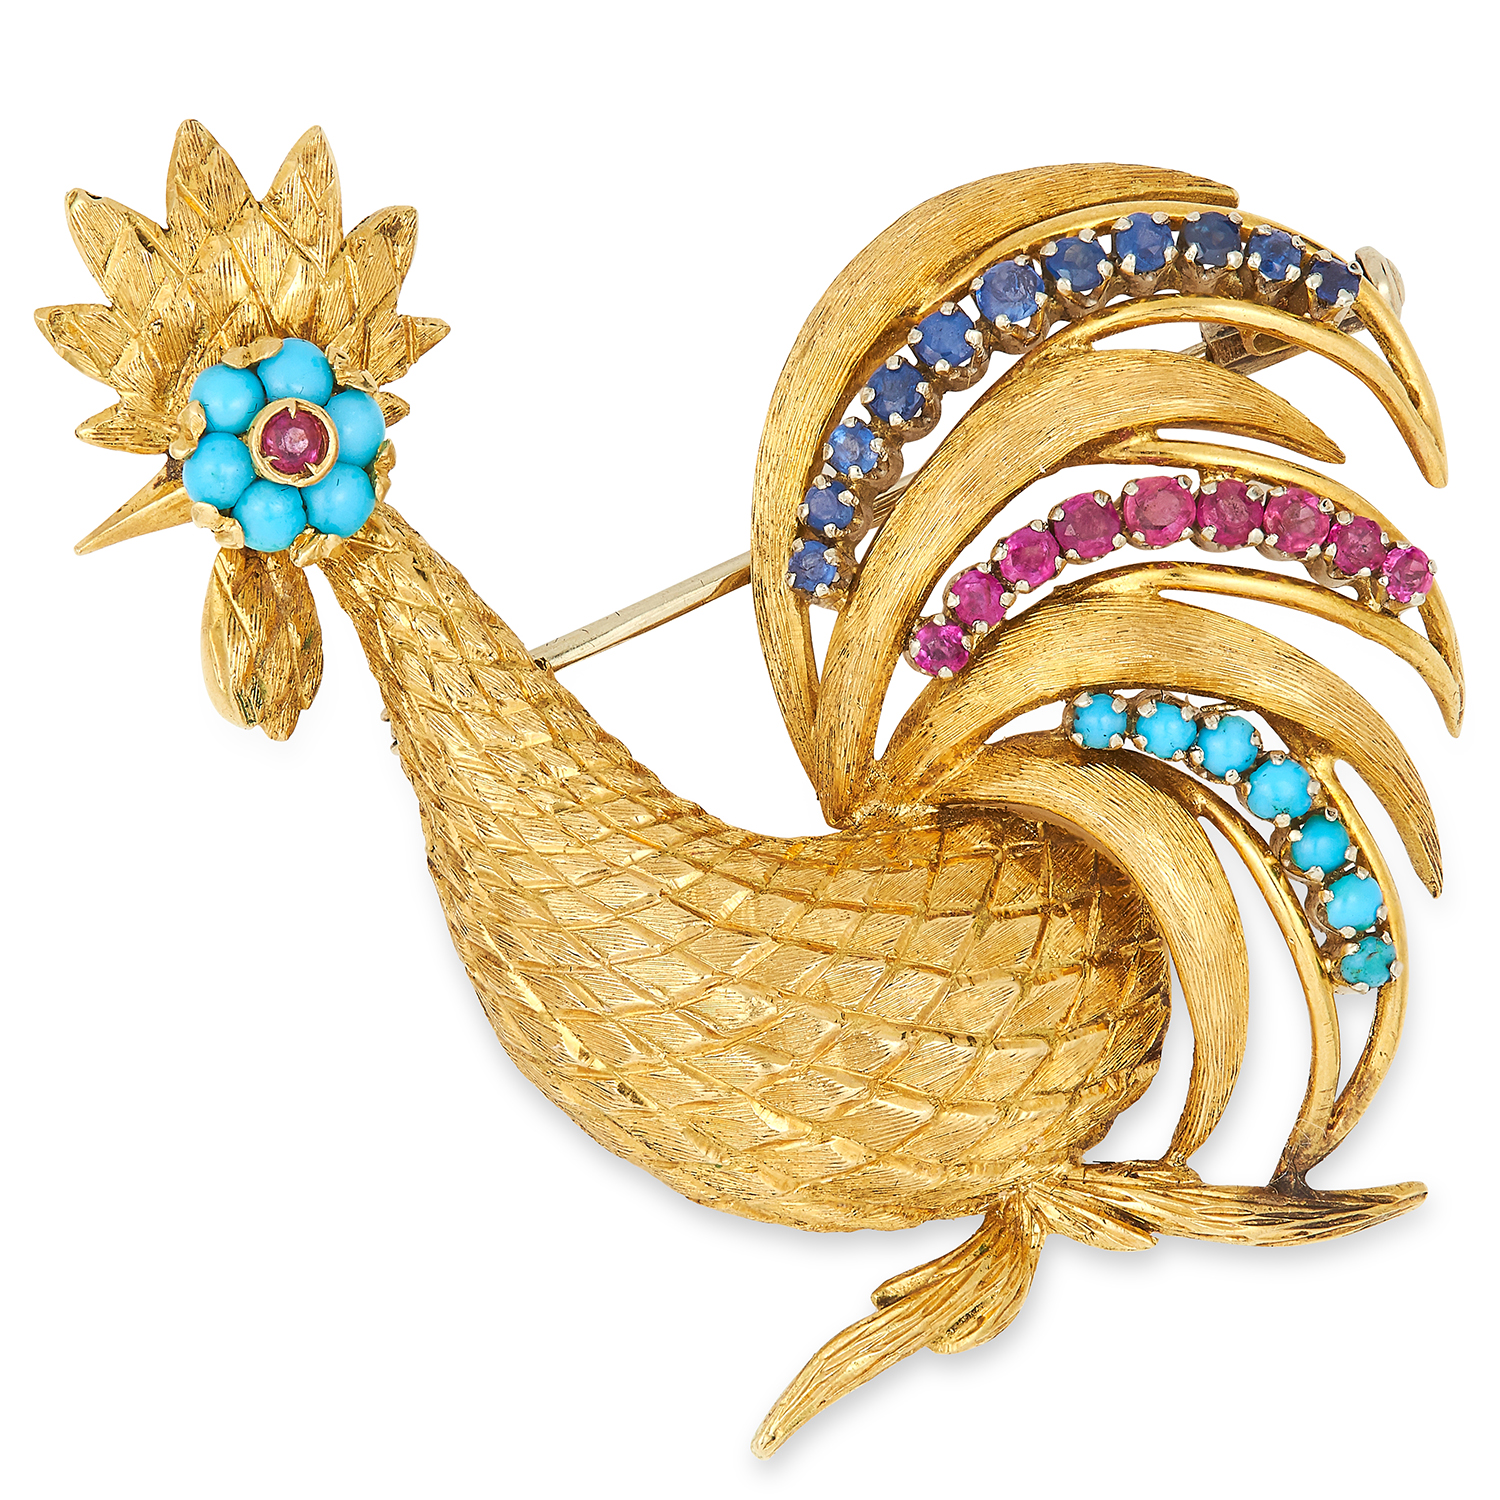 Los 26 - VINTAGE GEMSET COCKEREL BROOCH, set with cabochon turquoise, round cut rubies and round cut